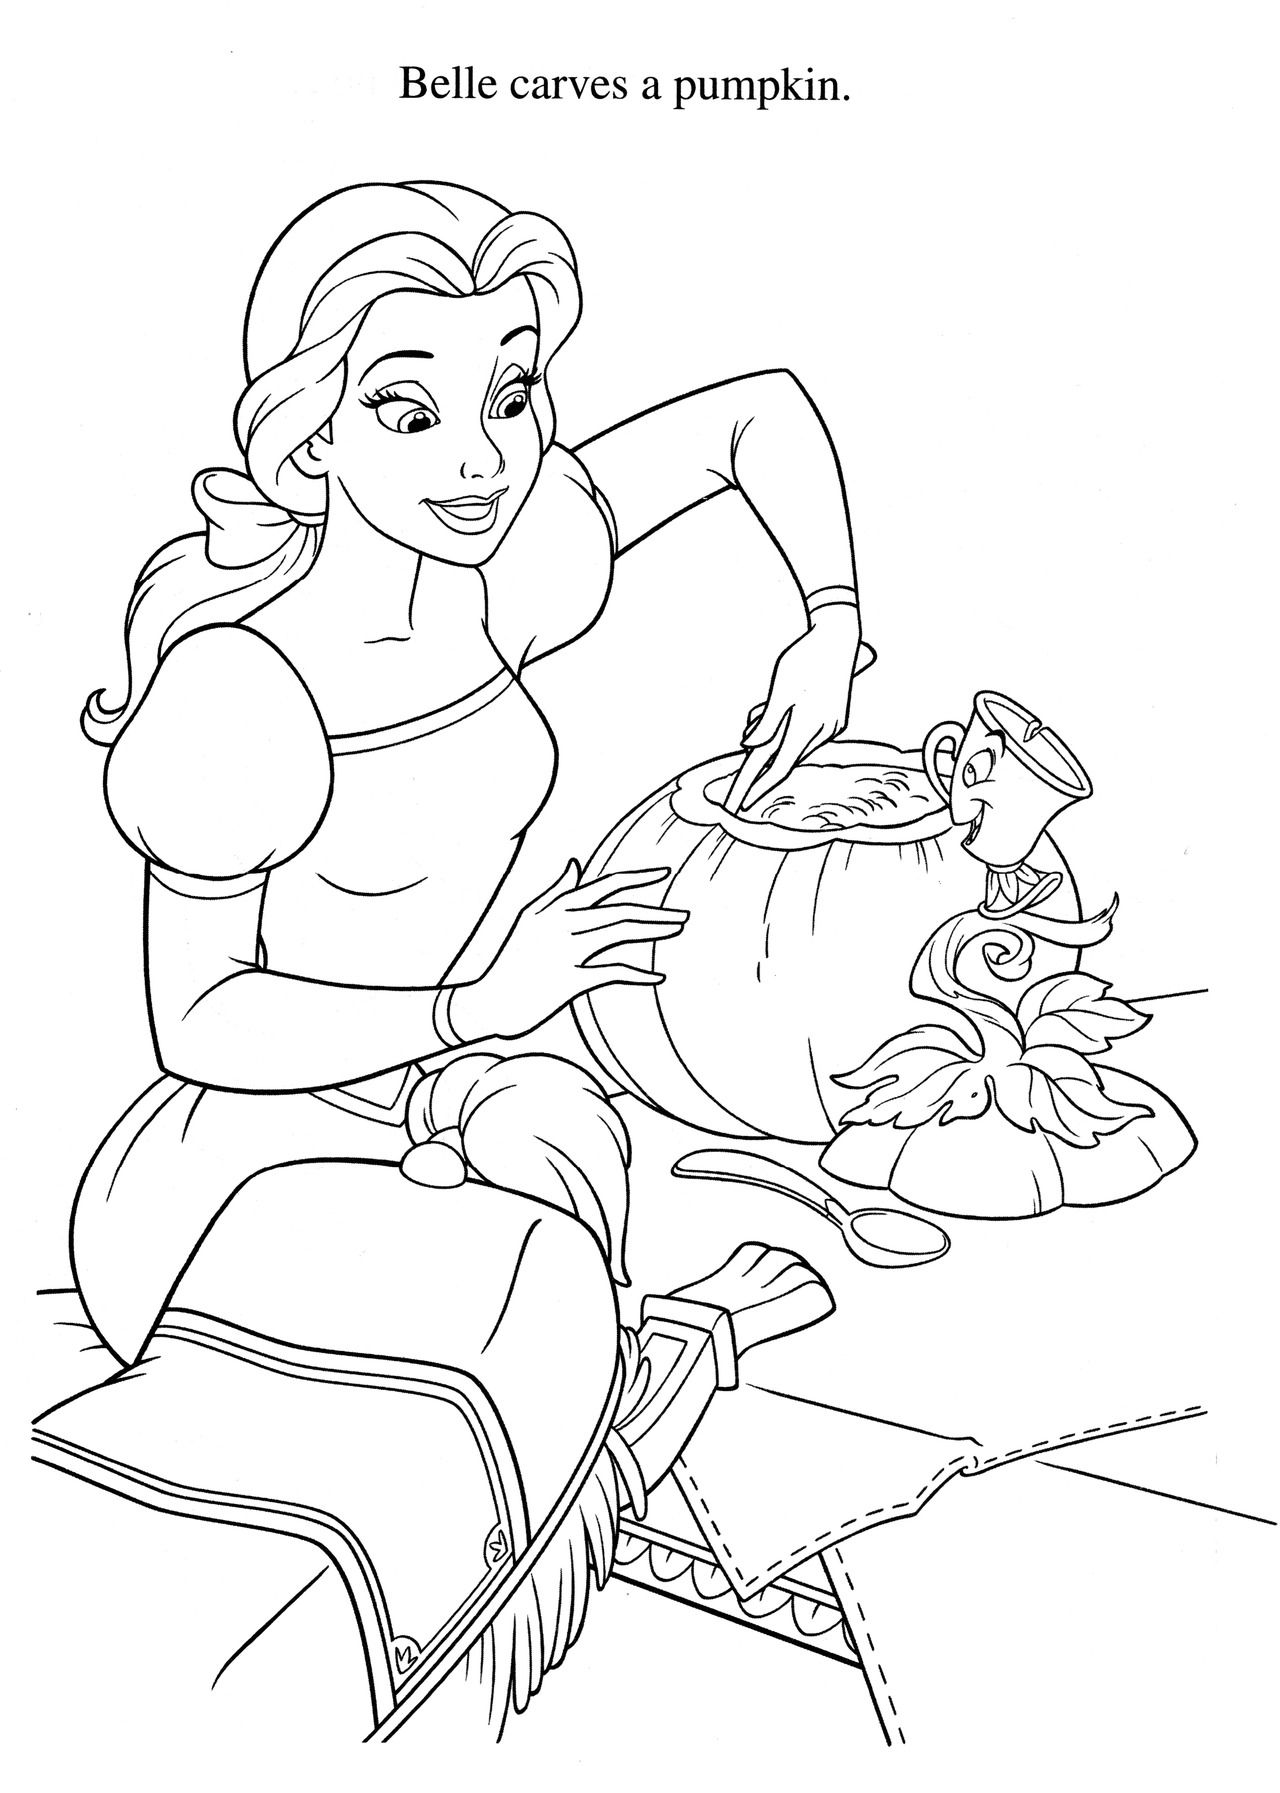 Disney Coloring Pages Disney coloring pages, Halloween